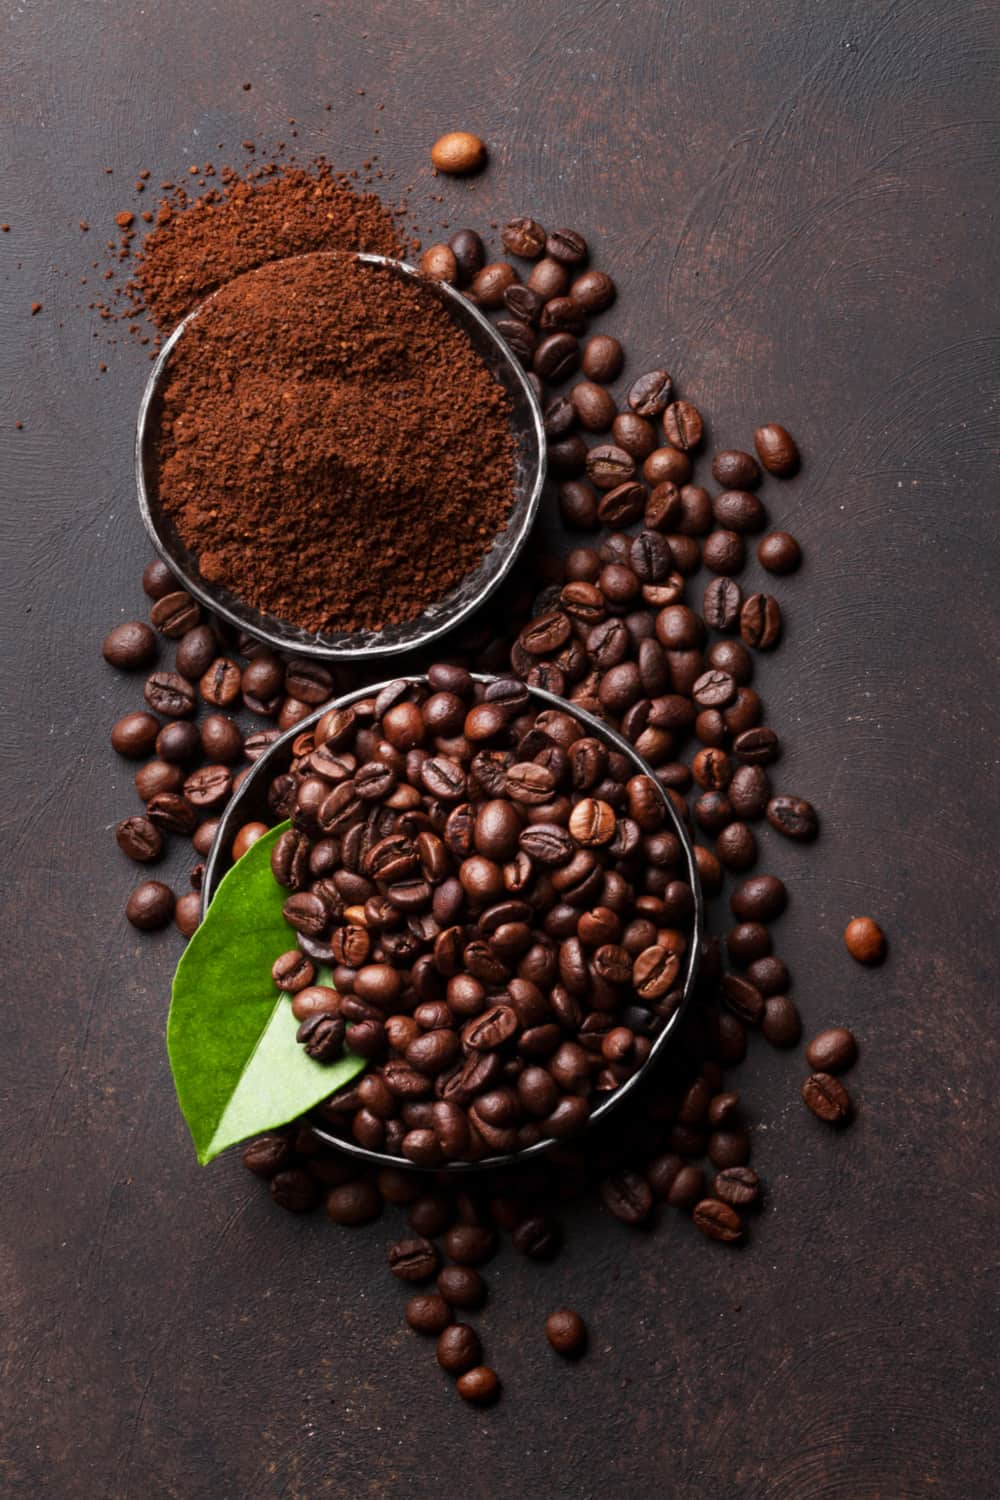 Whole Beans vs Ground Coffee Comparison